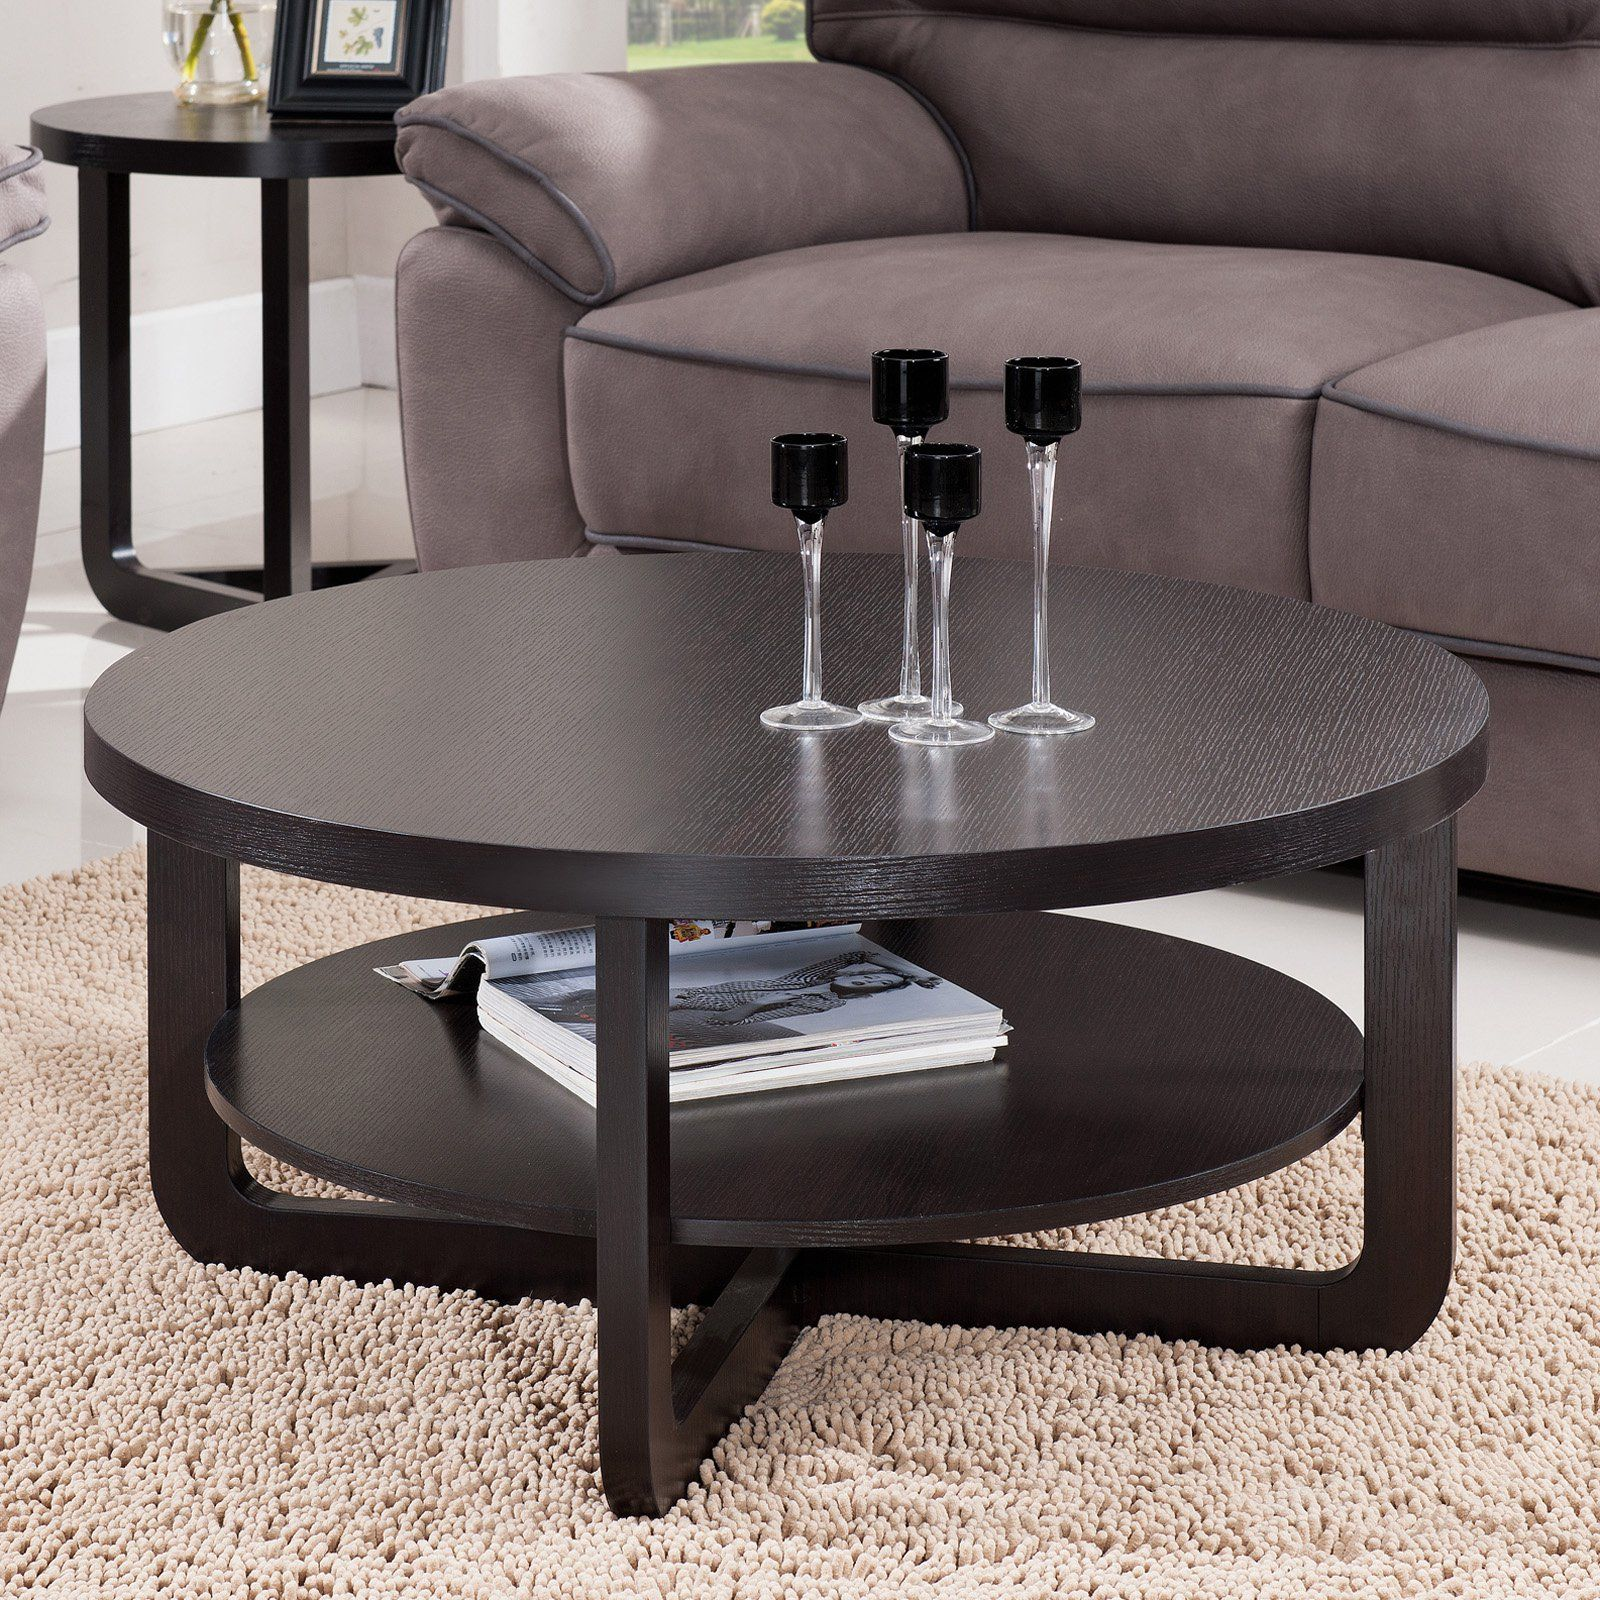 Furniture Of America Tiered Round Coffee Table Www Hayneedle Com Coffee Table Furniture Of America Furniture [ 1600 x 1600 Pixel ]